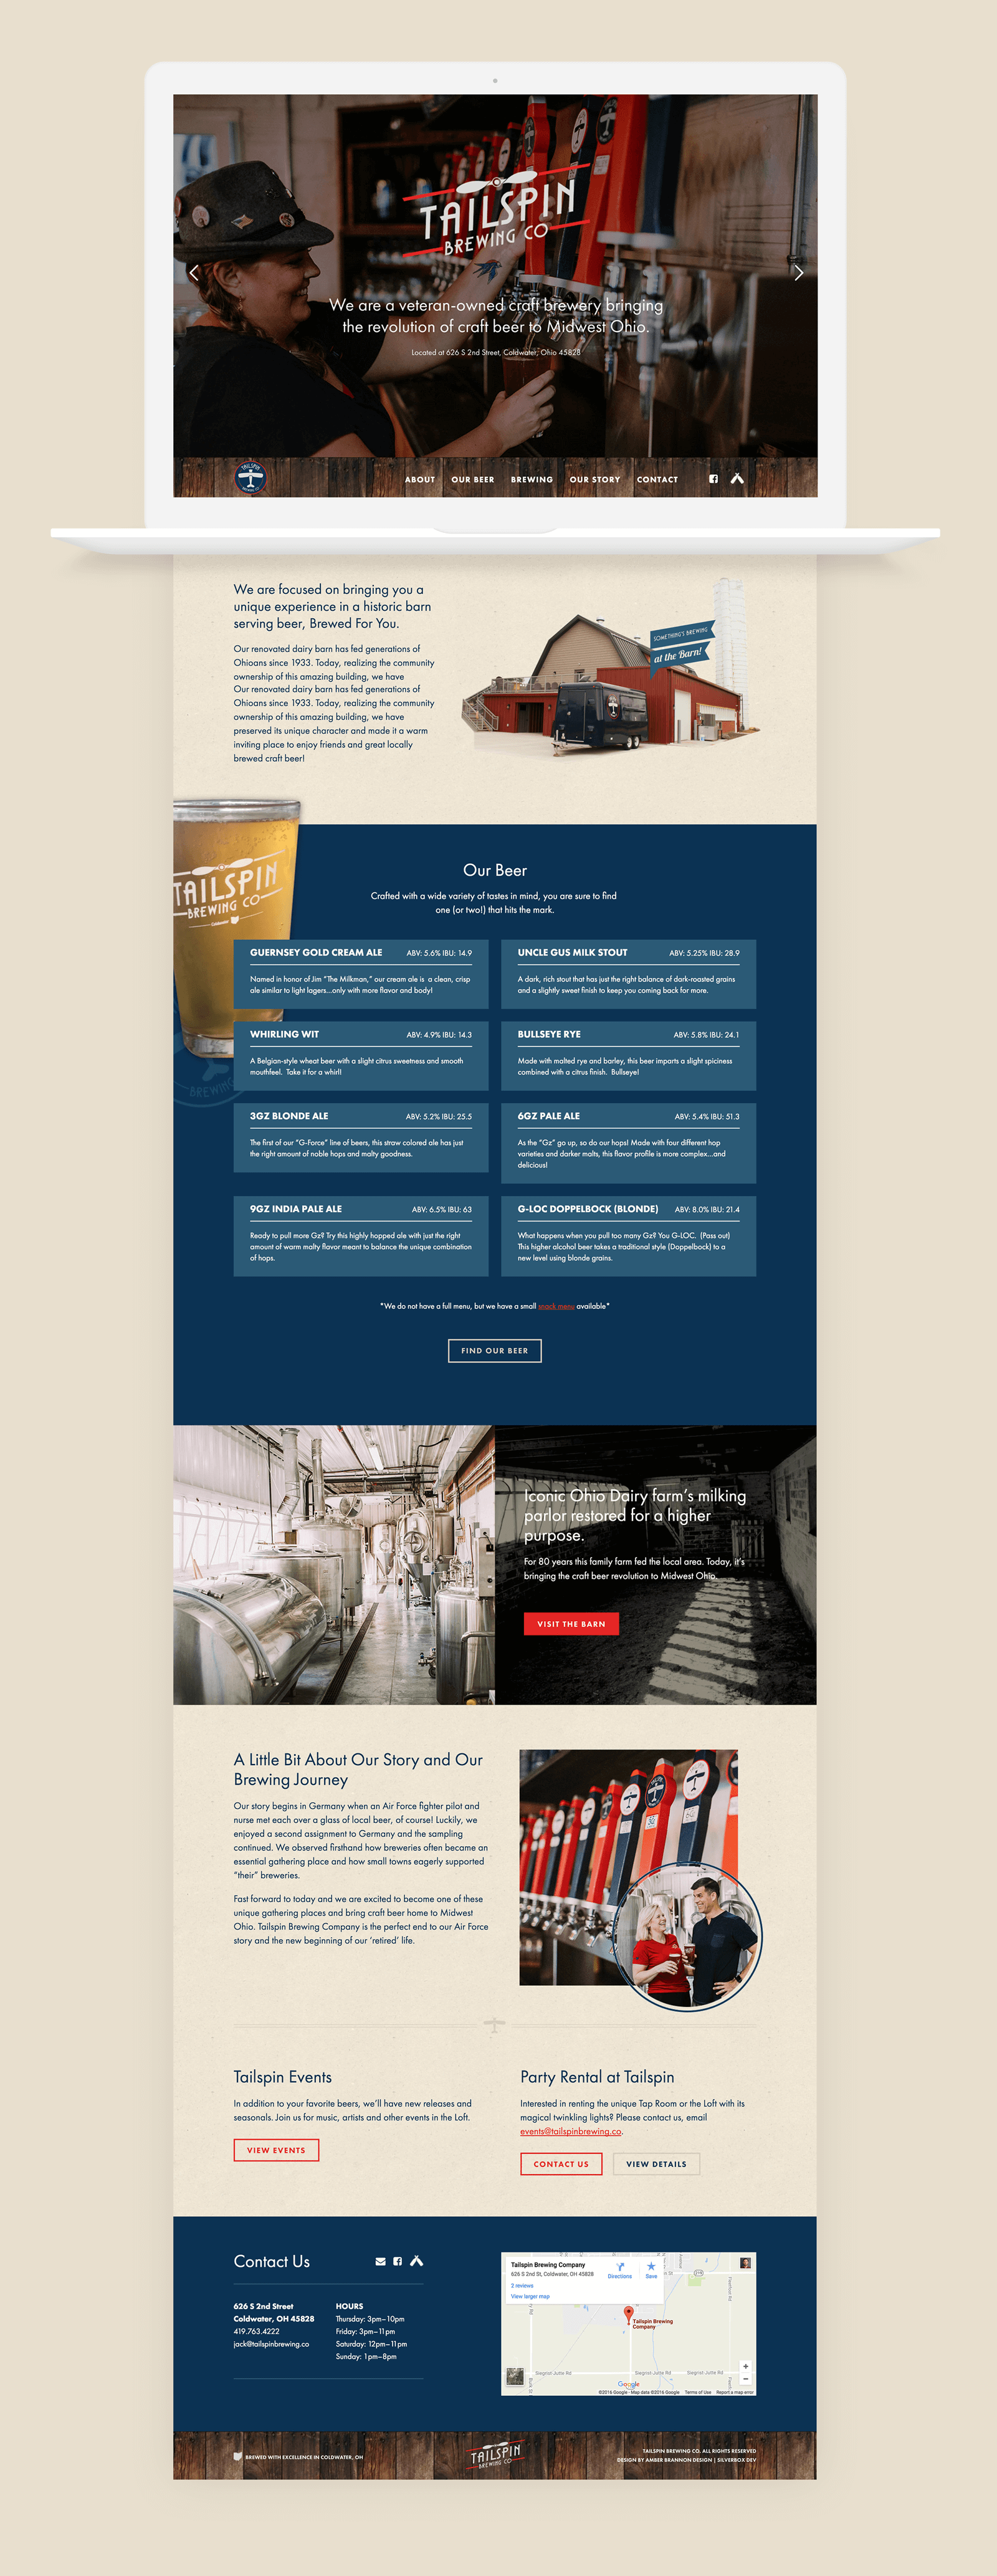 tailspin-brewing-copperheart-creative-website-light-5.png